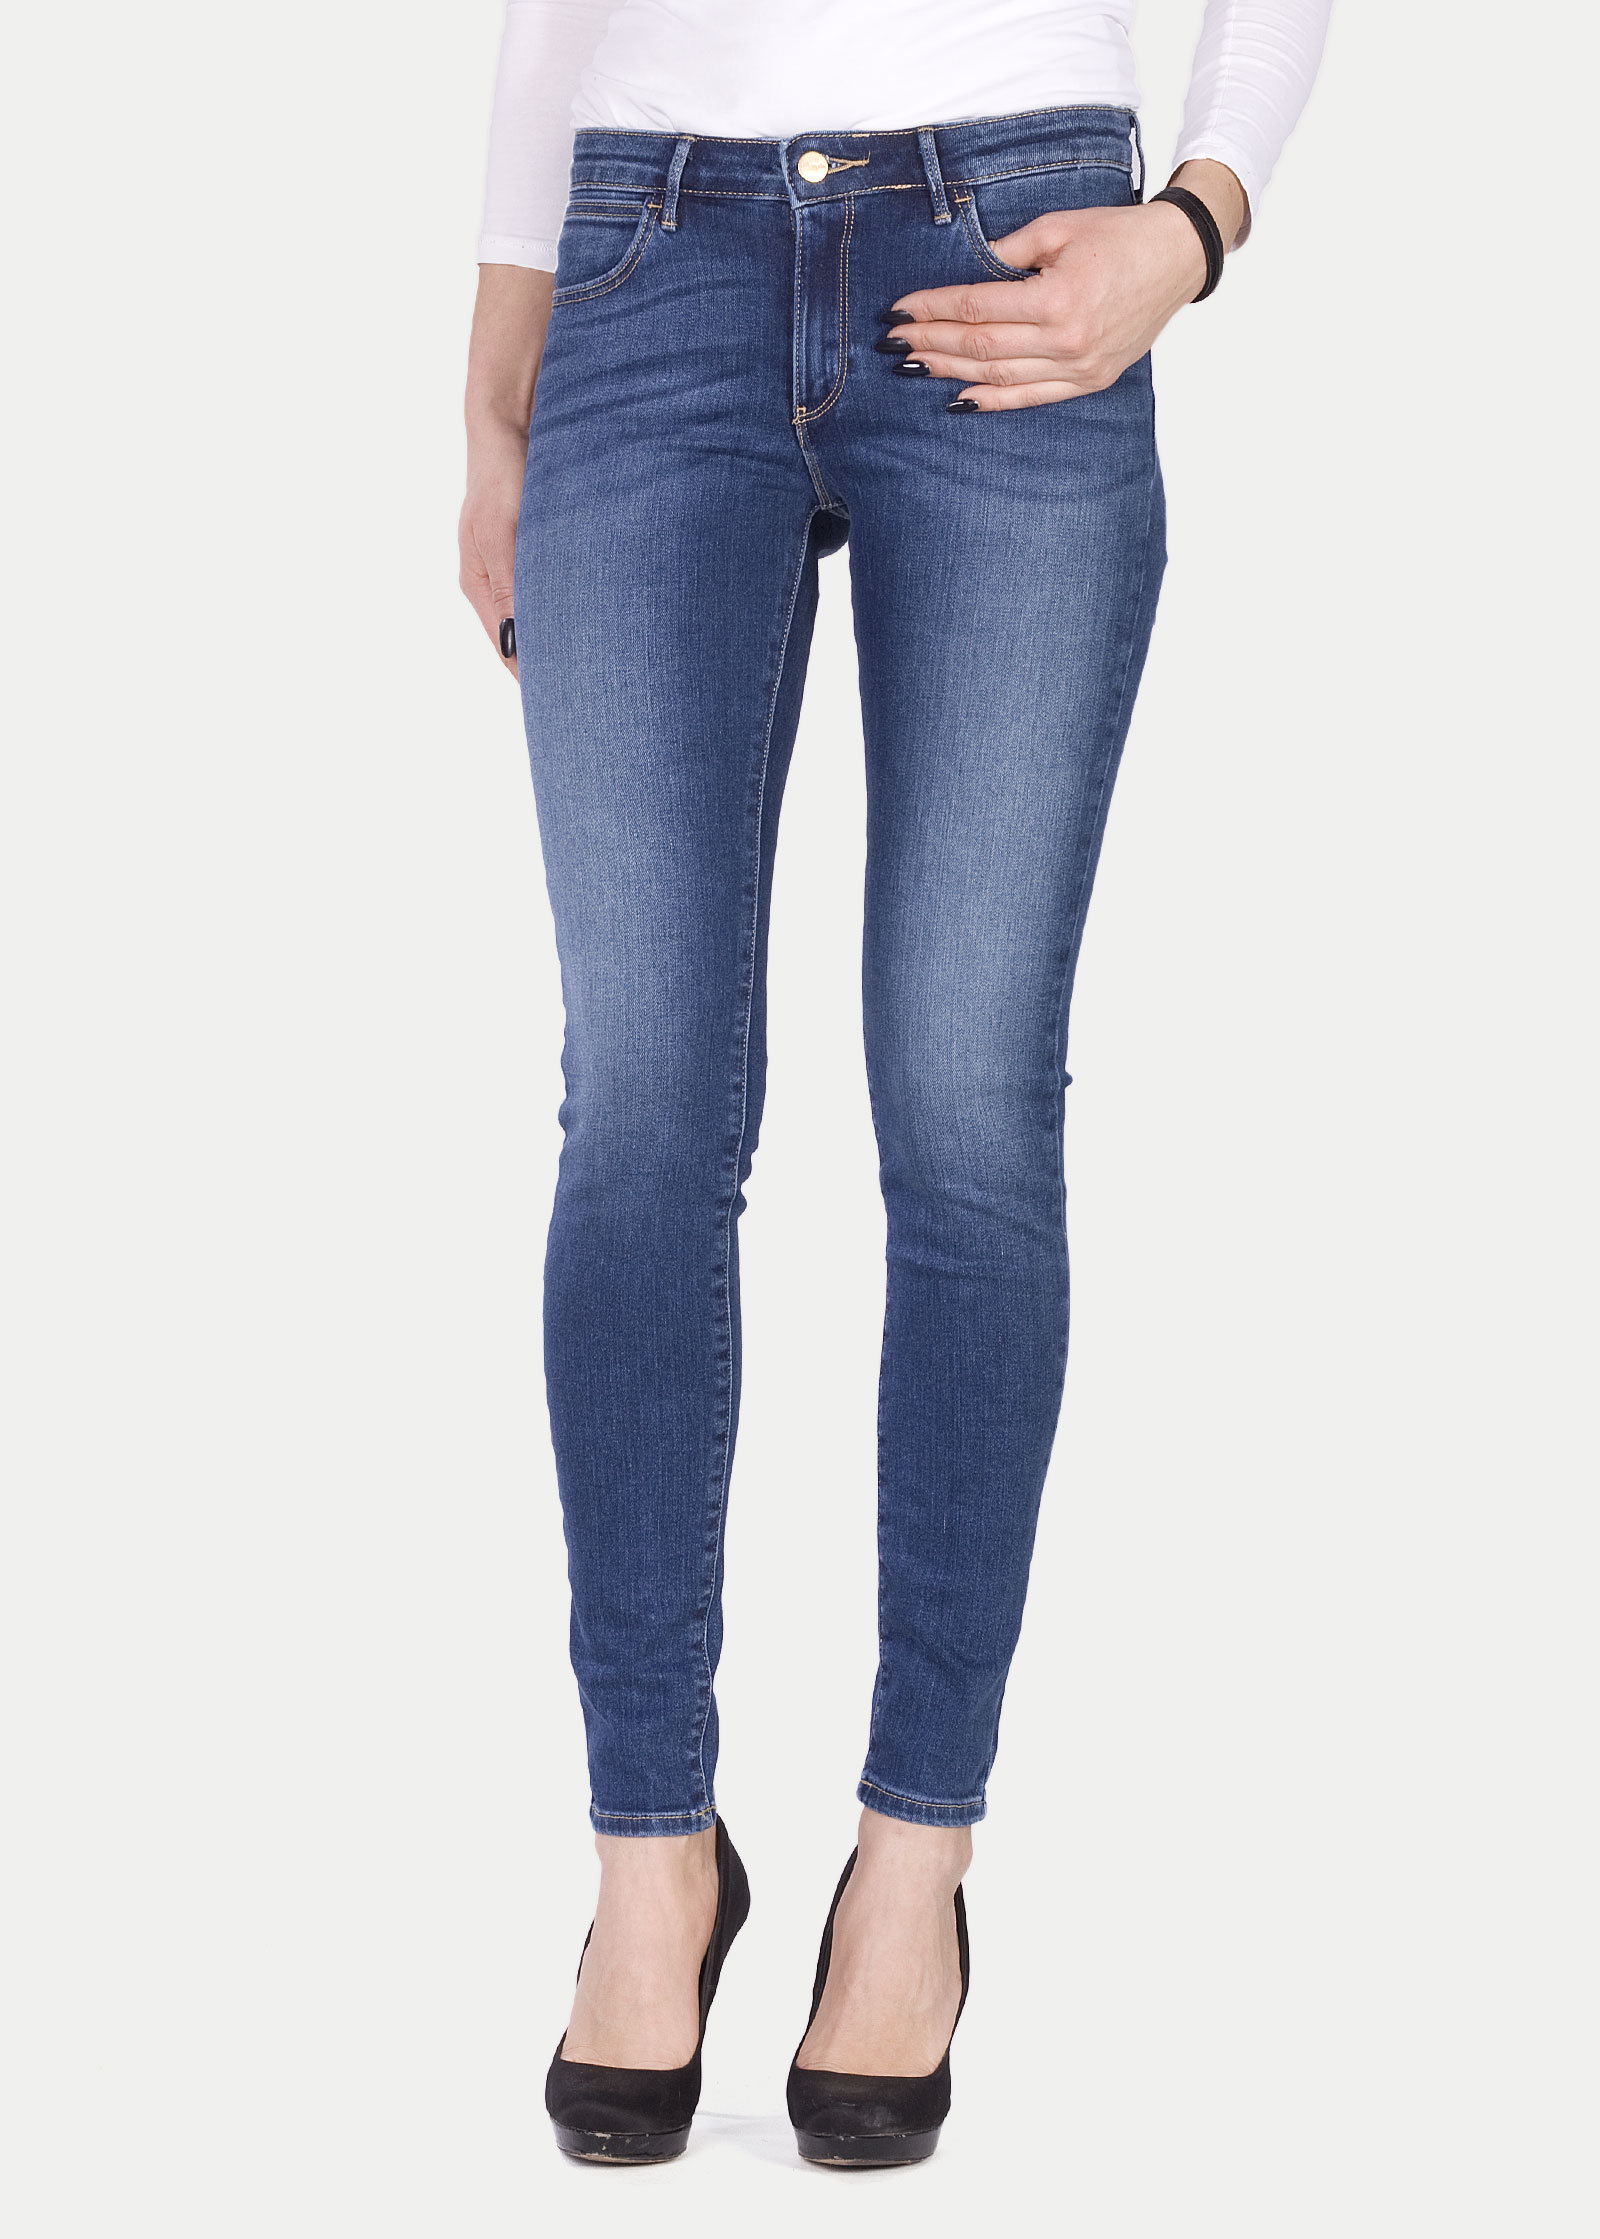 super cheap great discount for vivid and great in style Womans Jeans Wrangler Skinny - Authentic Blue